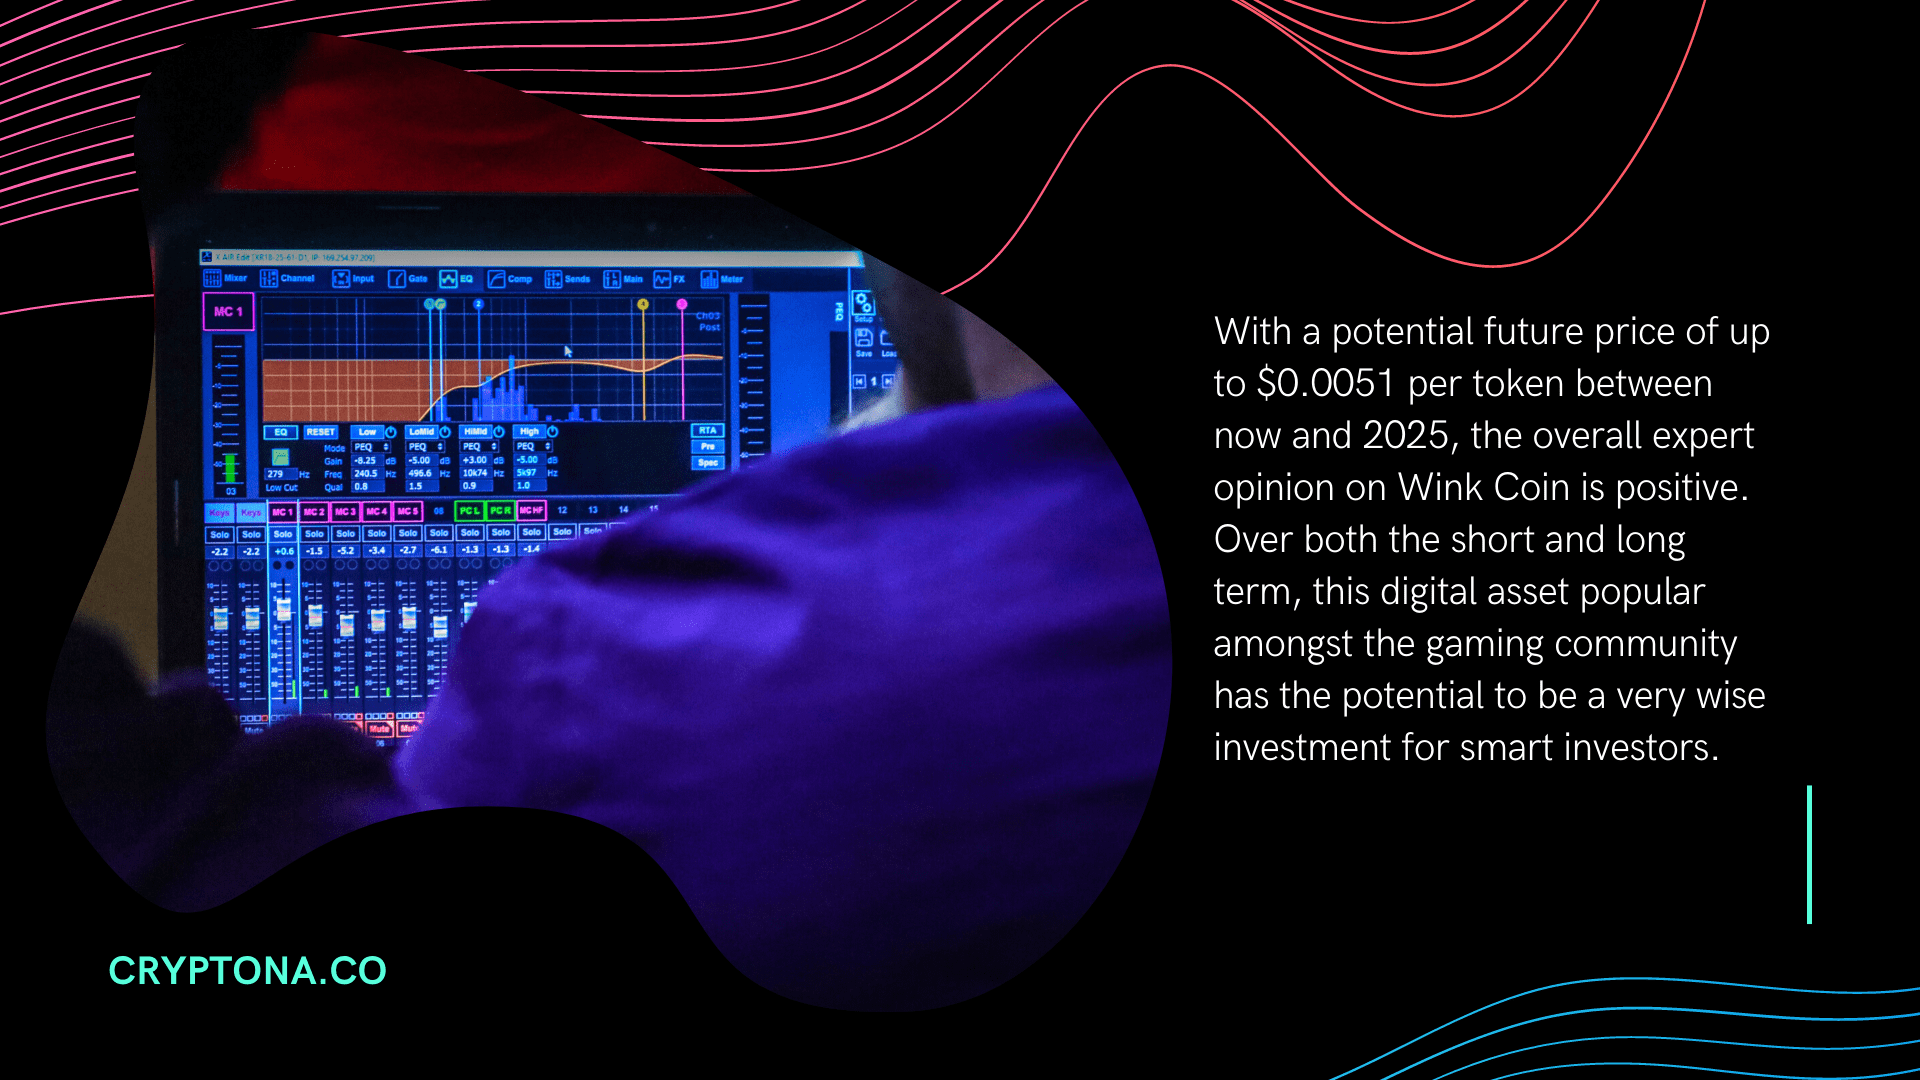 Expert analysis of the Wink Coin price potential